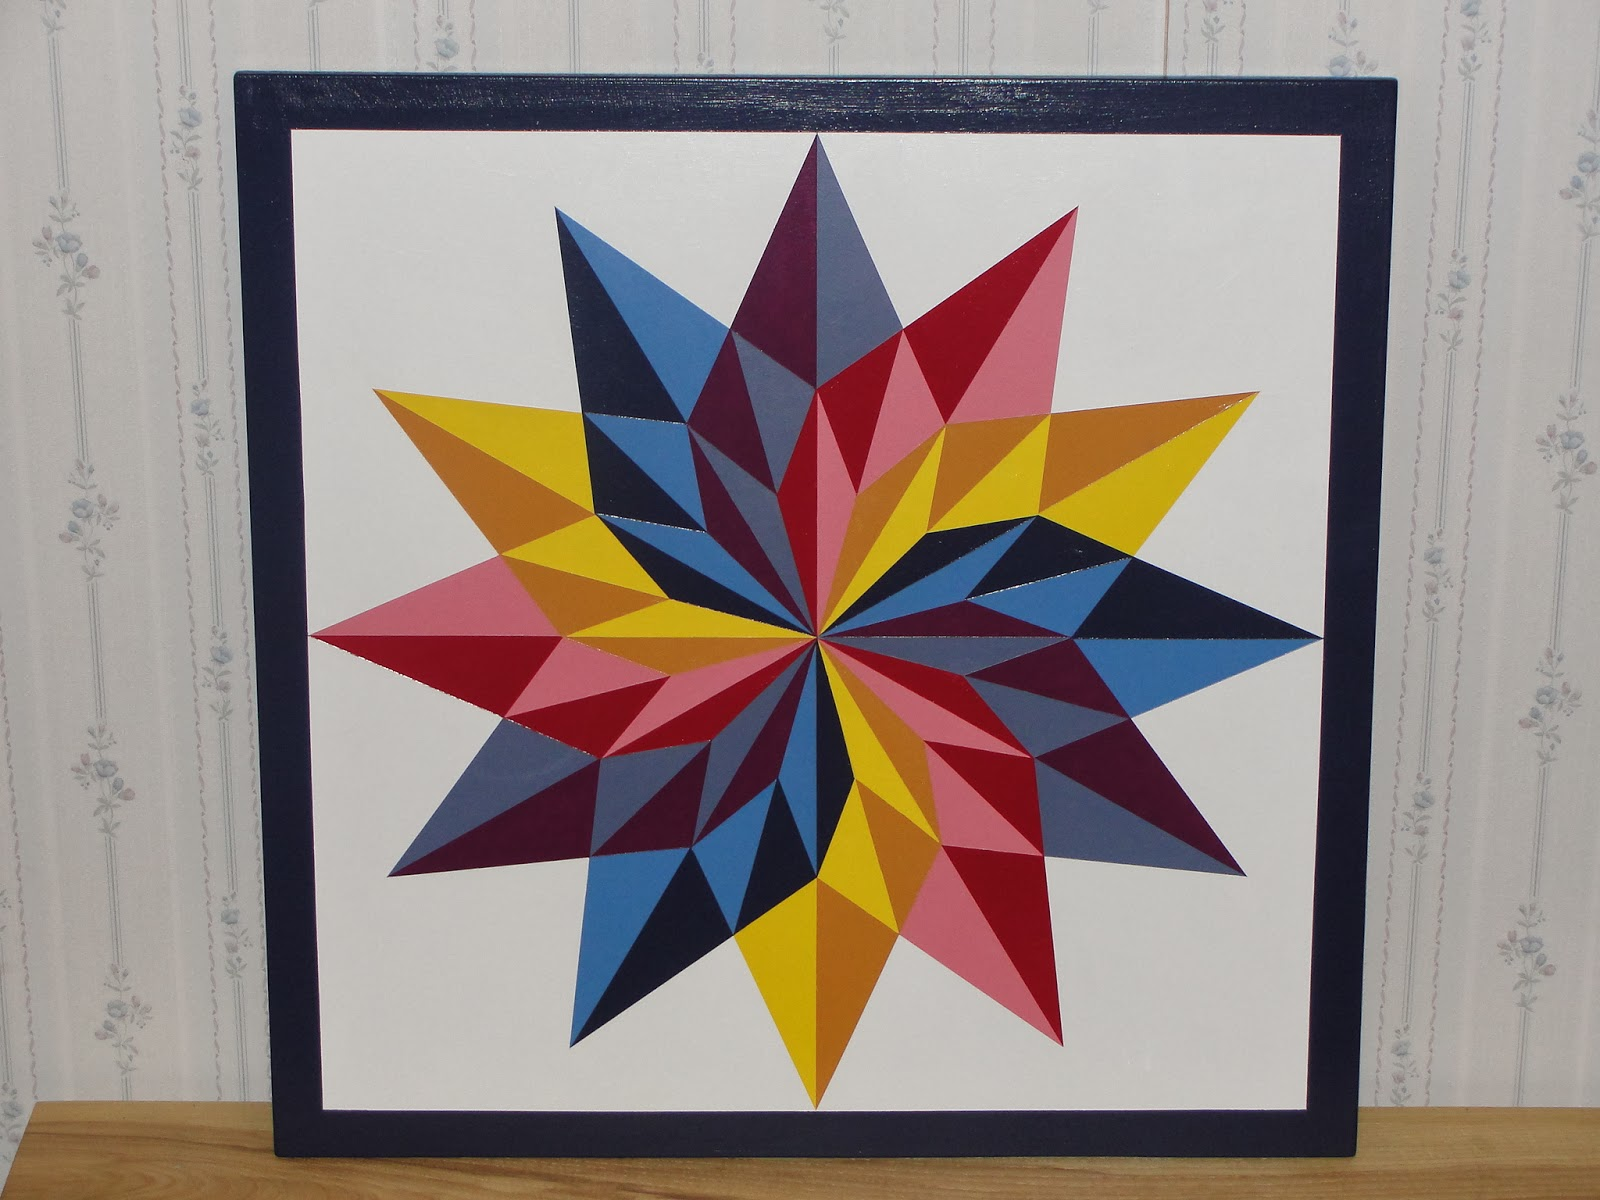 It's just a photo of Lively Printable Barn Quilt Patterns